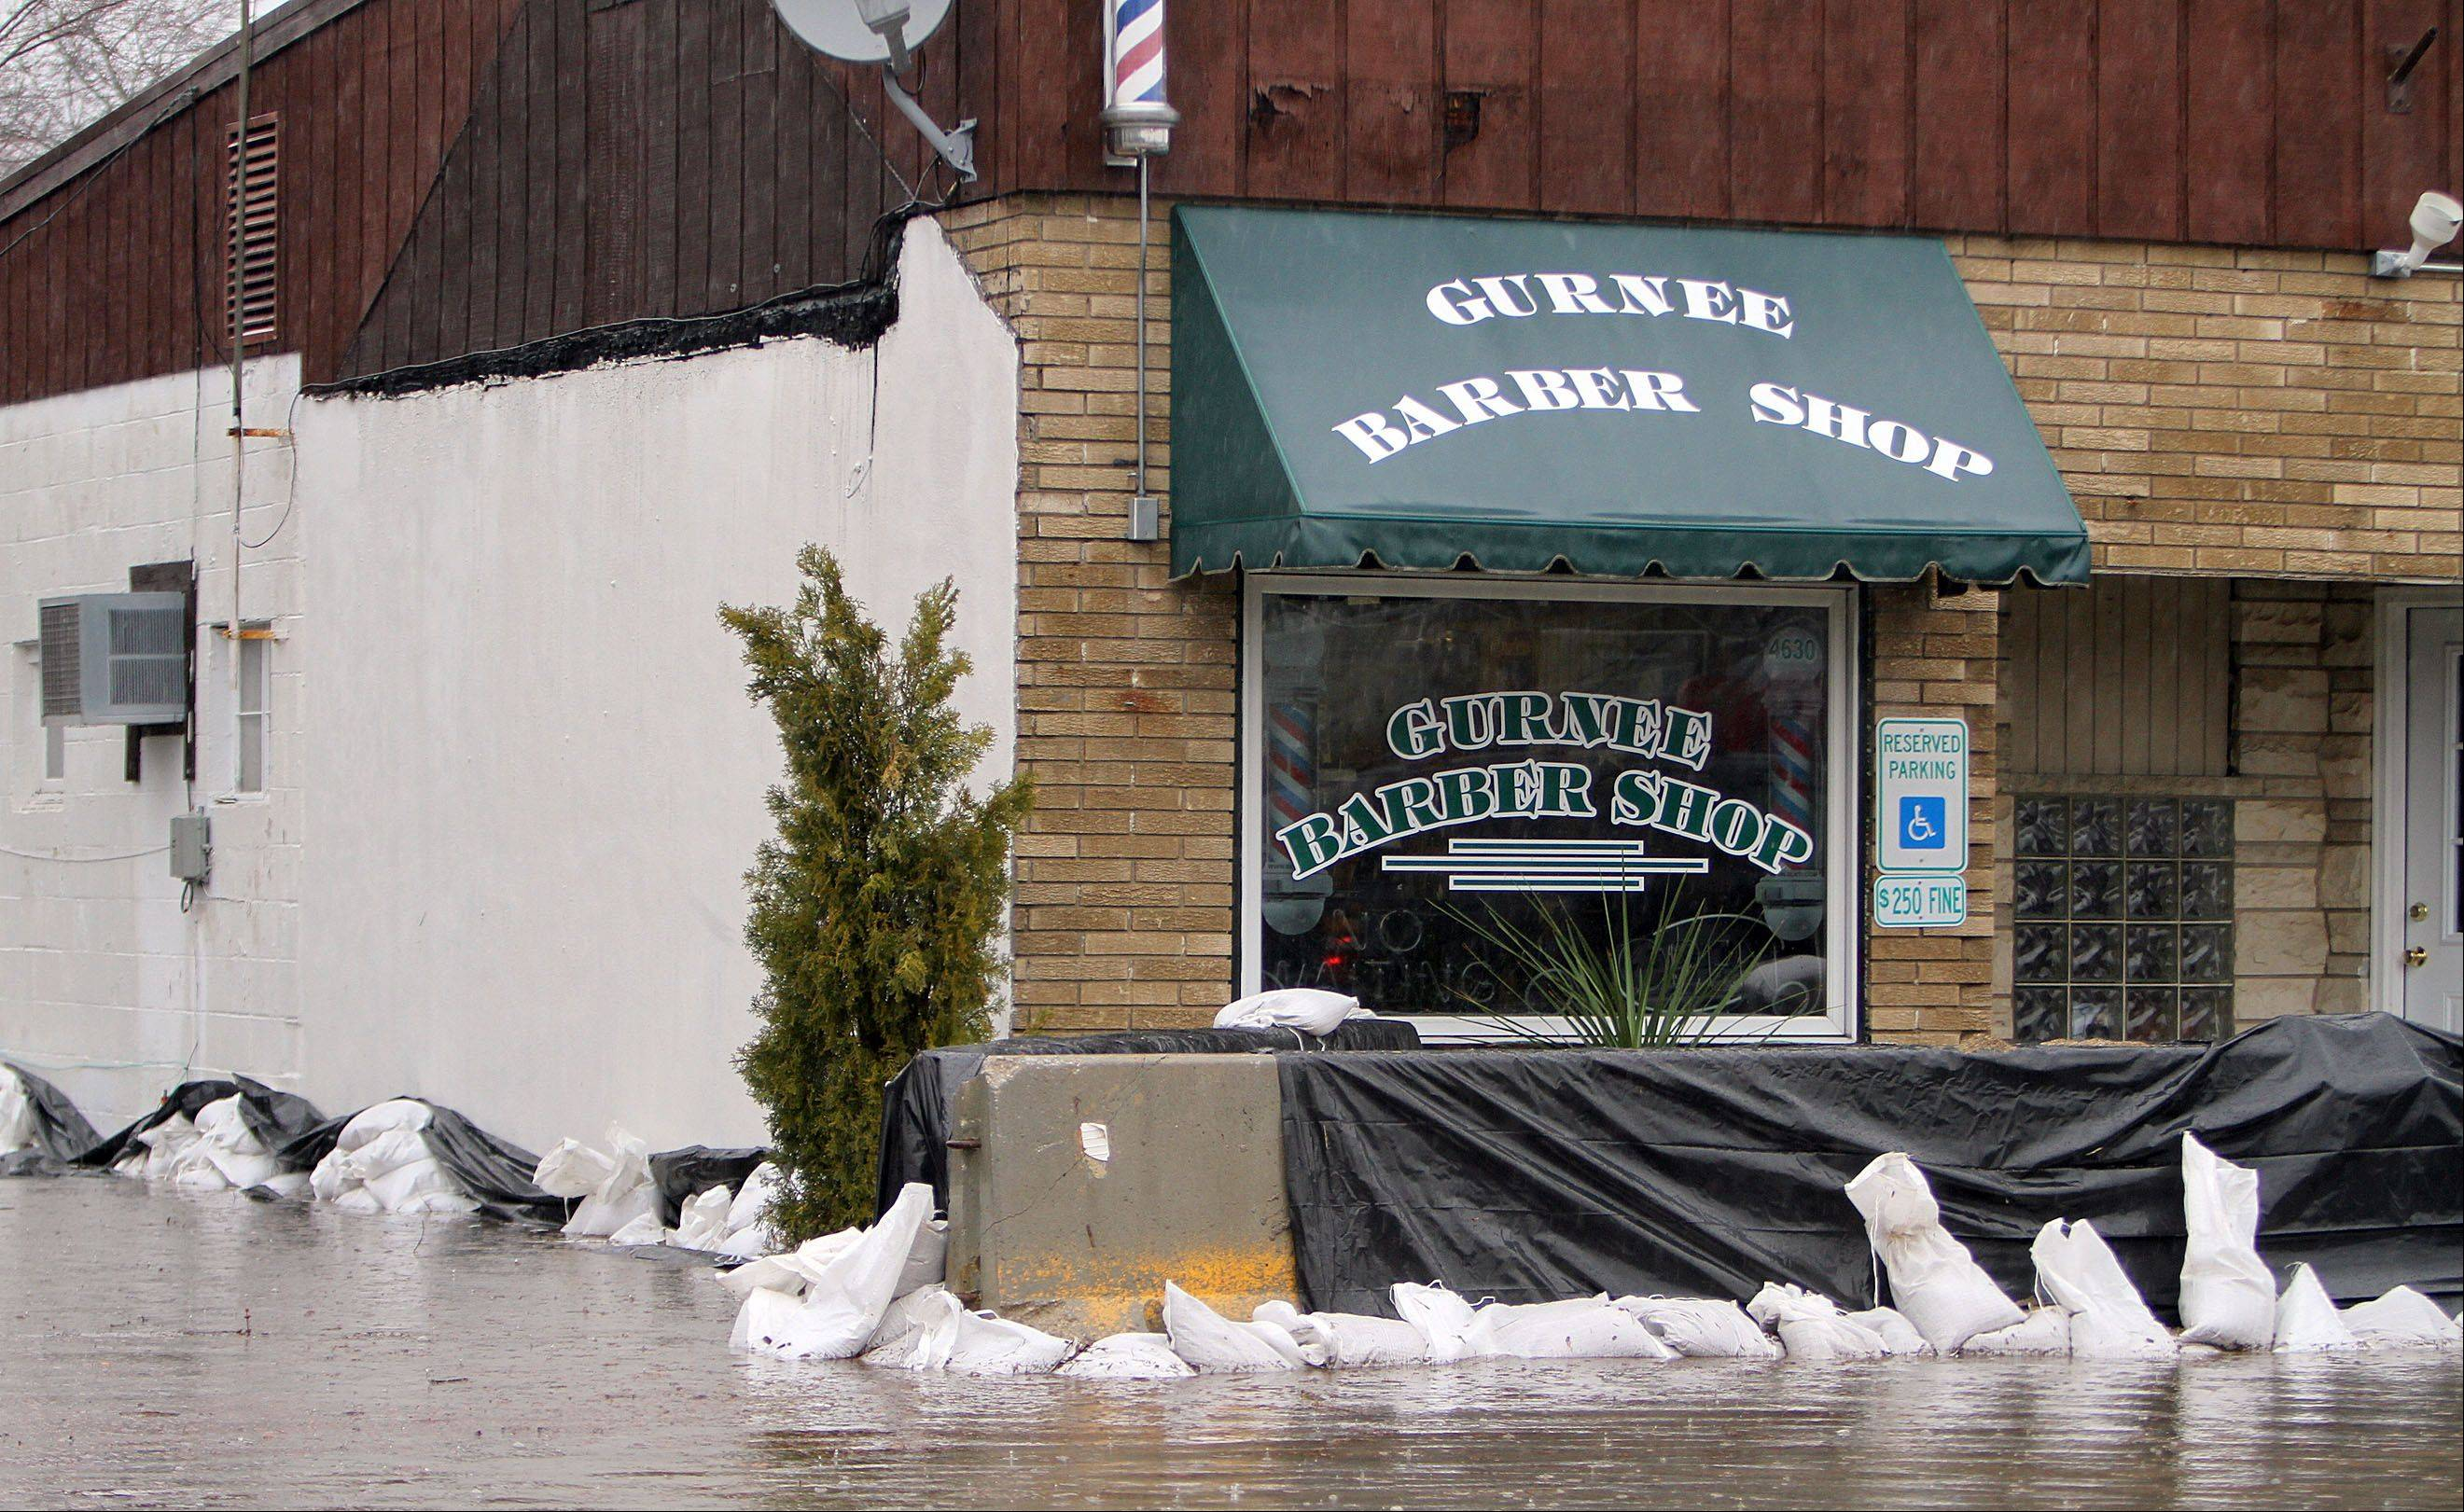 Steve Lundy/slundy@dailyherald.comThe Gurnee Barber Shop Old Grand Avenue prepares for flooding in Gurnee Thursday morning.